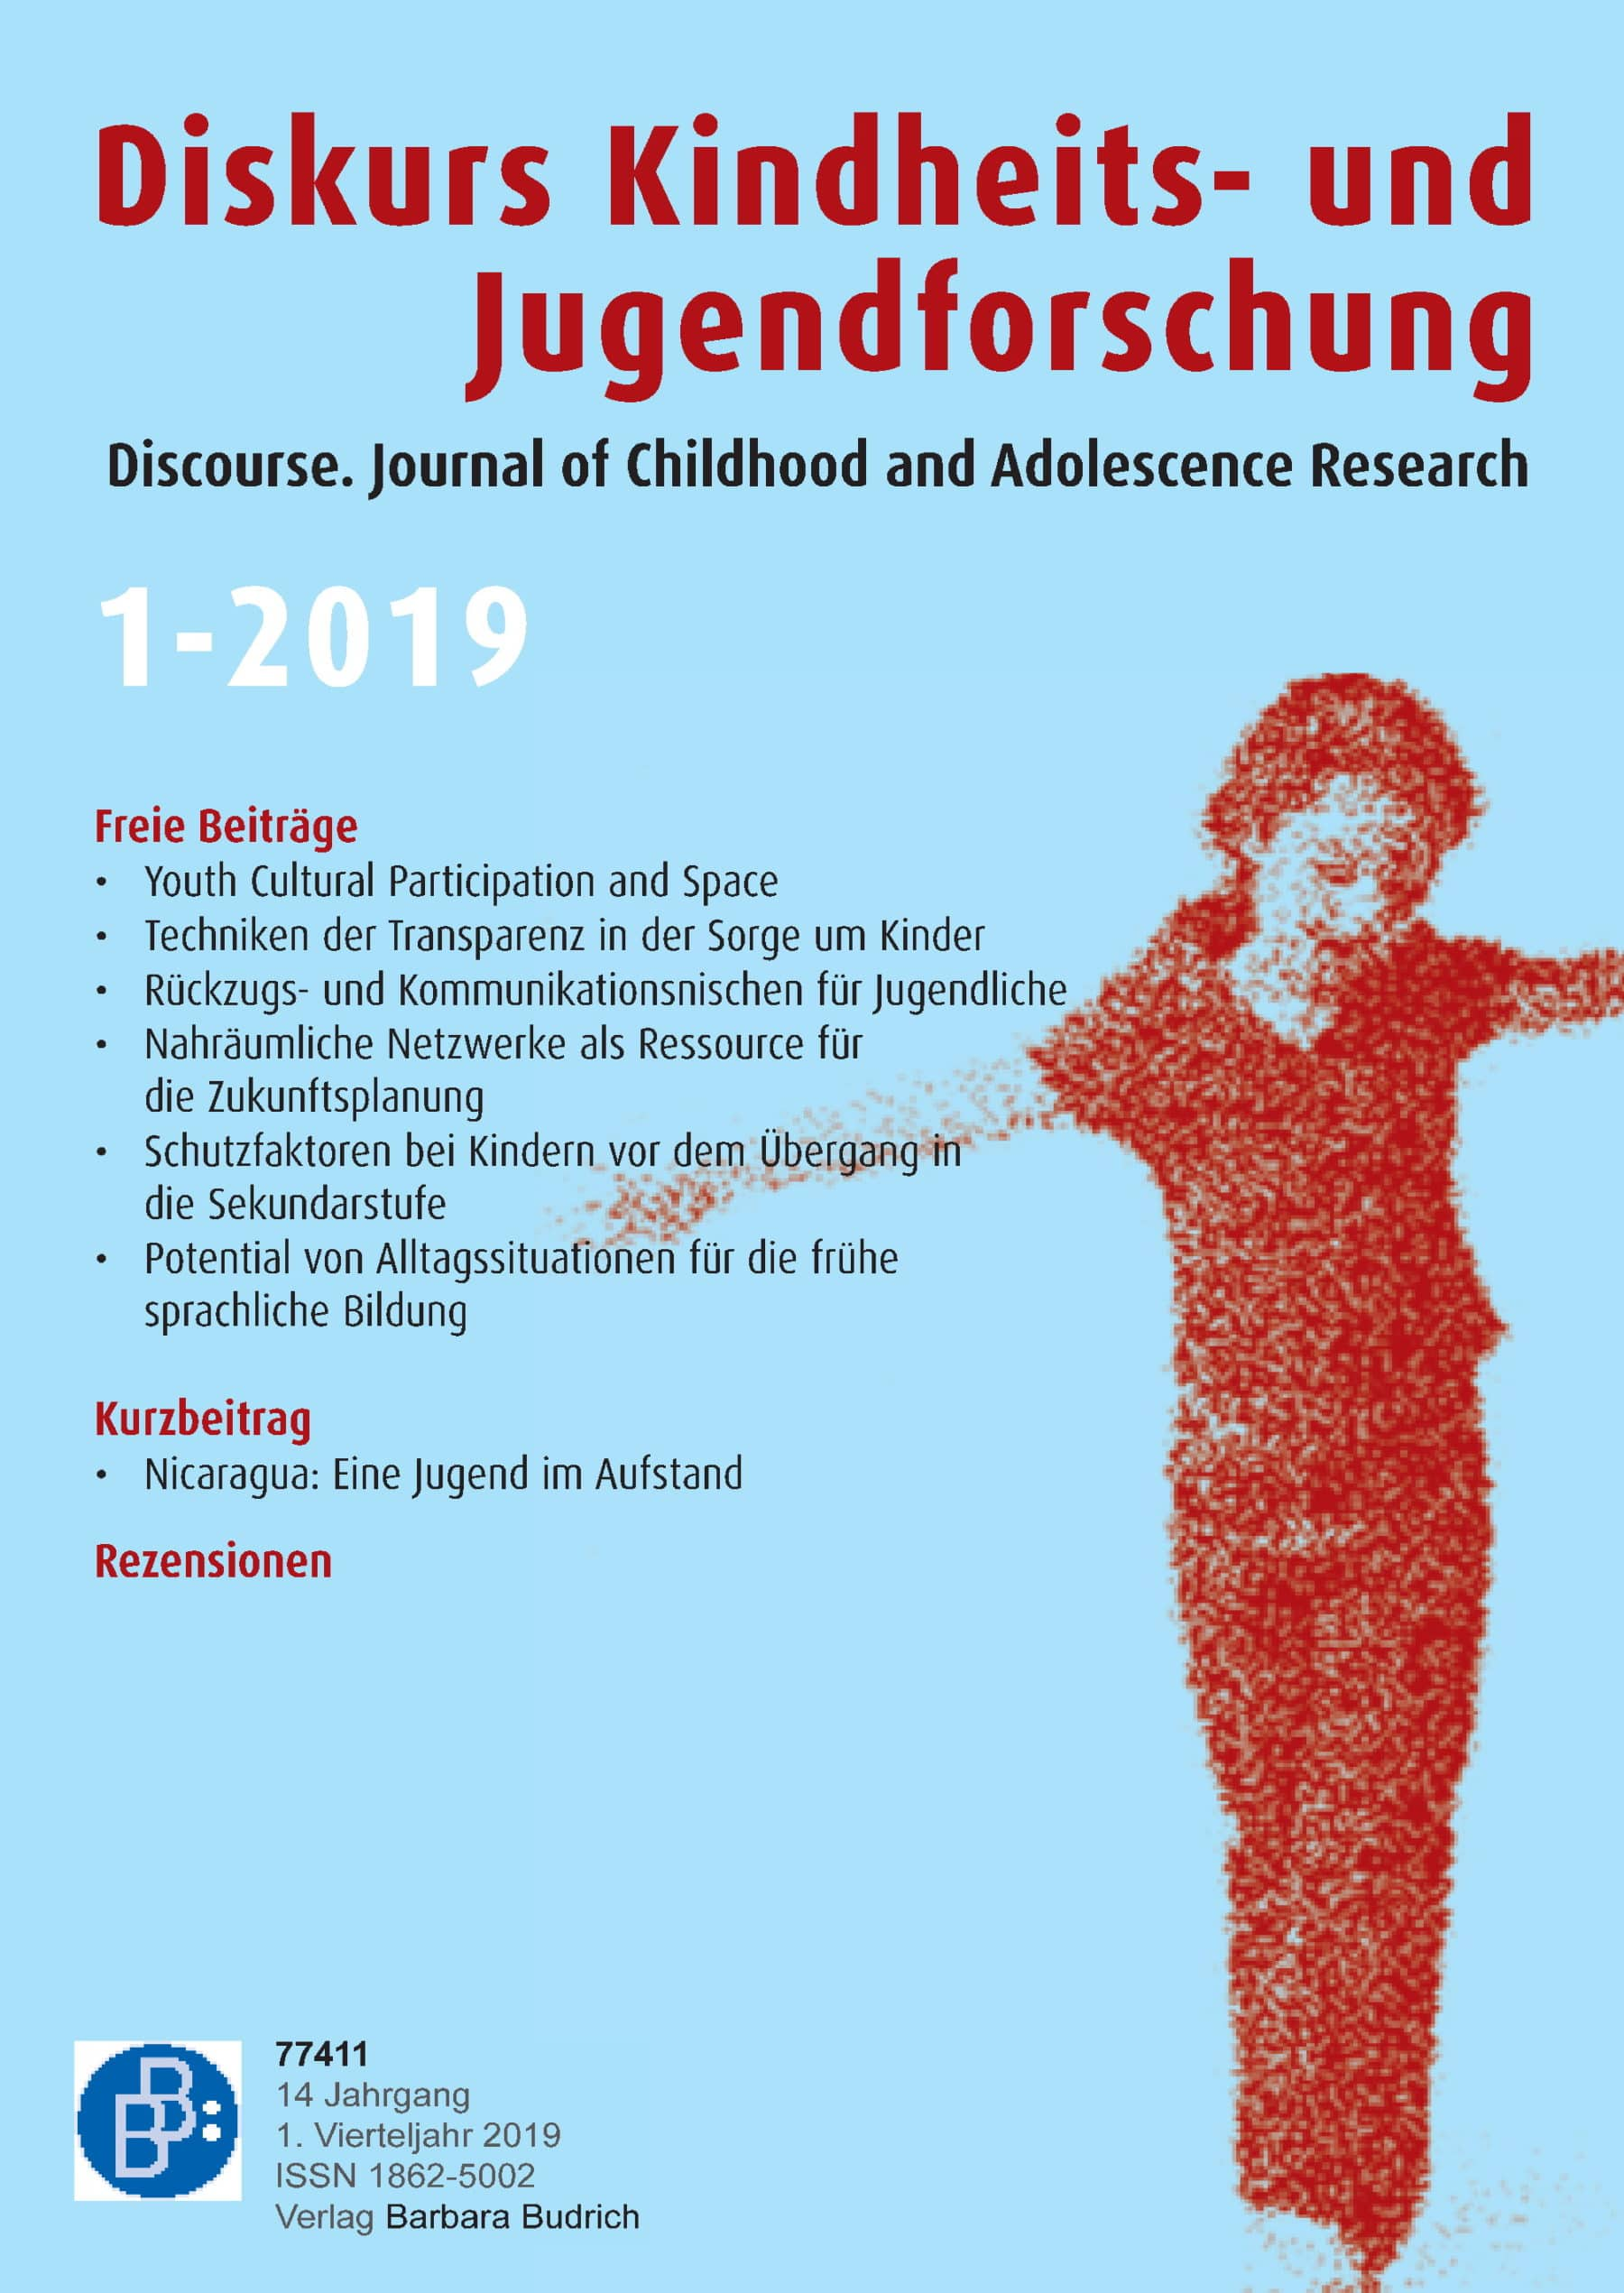 Diskurs Kindheits- und Jugendforschung / Discourse. Journal of Childhood and Adolescence Research 1-2019: Freie Beiträge